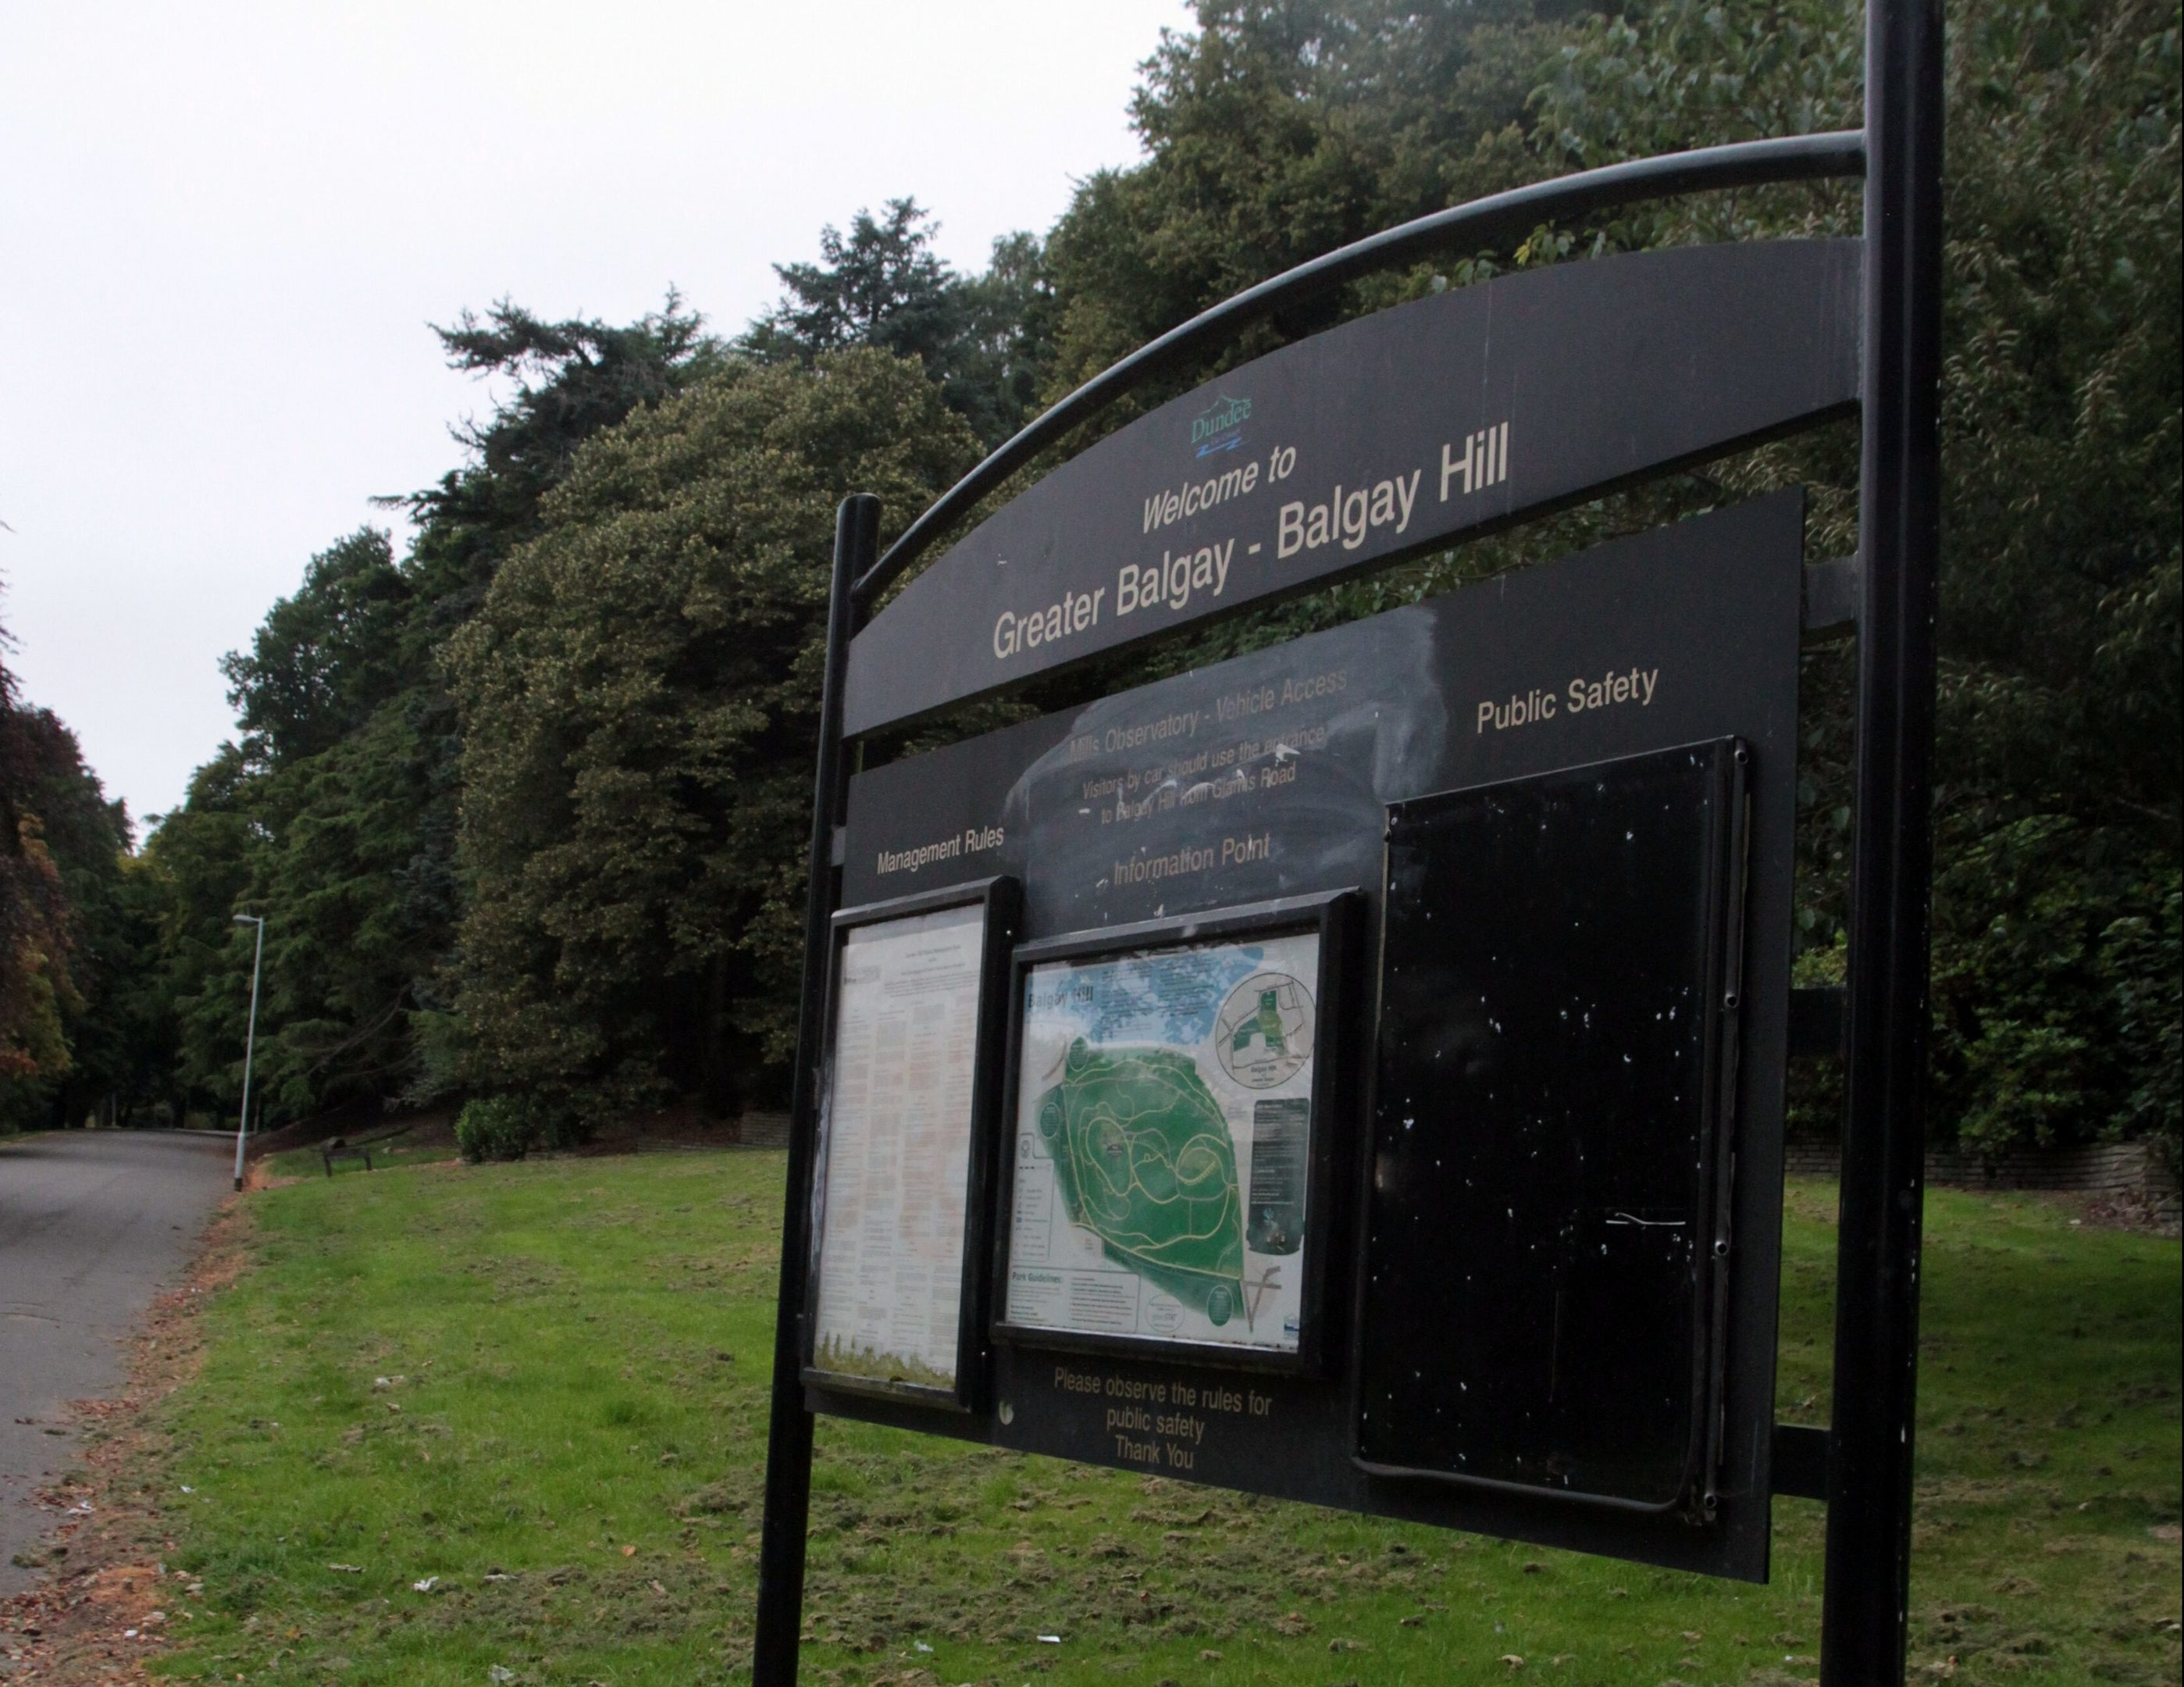 The dog was hit in Balgay Park.